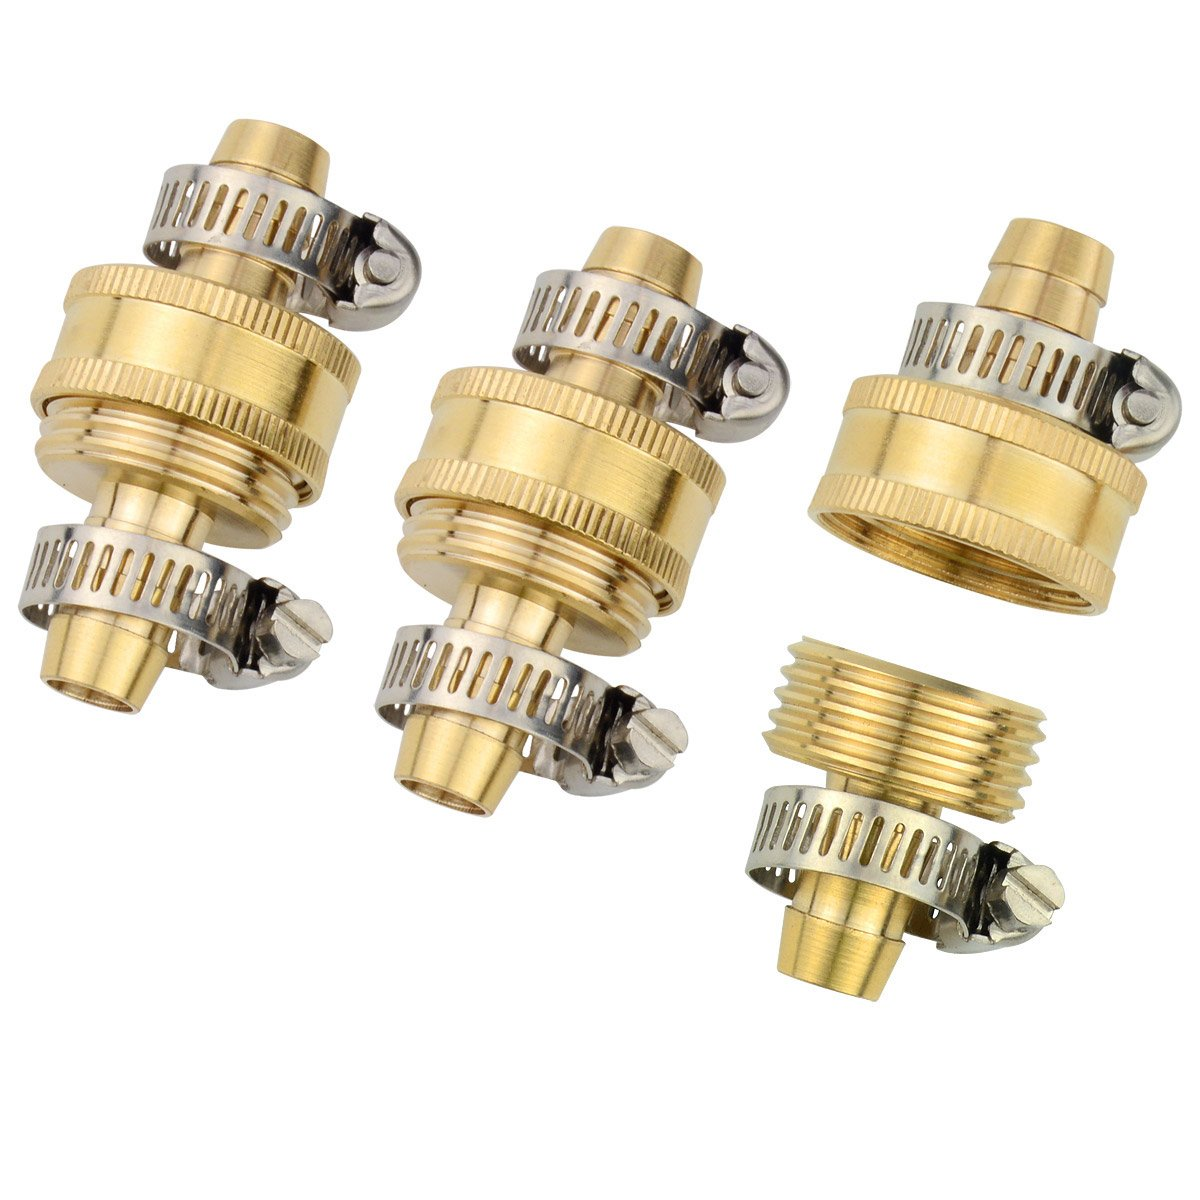 "3Sets Brass Smaller 1/2"" Garden Hose Mender Repair Male Female Connector with Stainless Clamps"